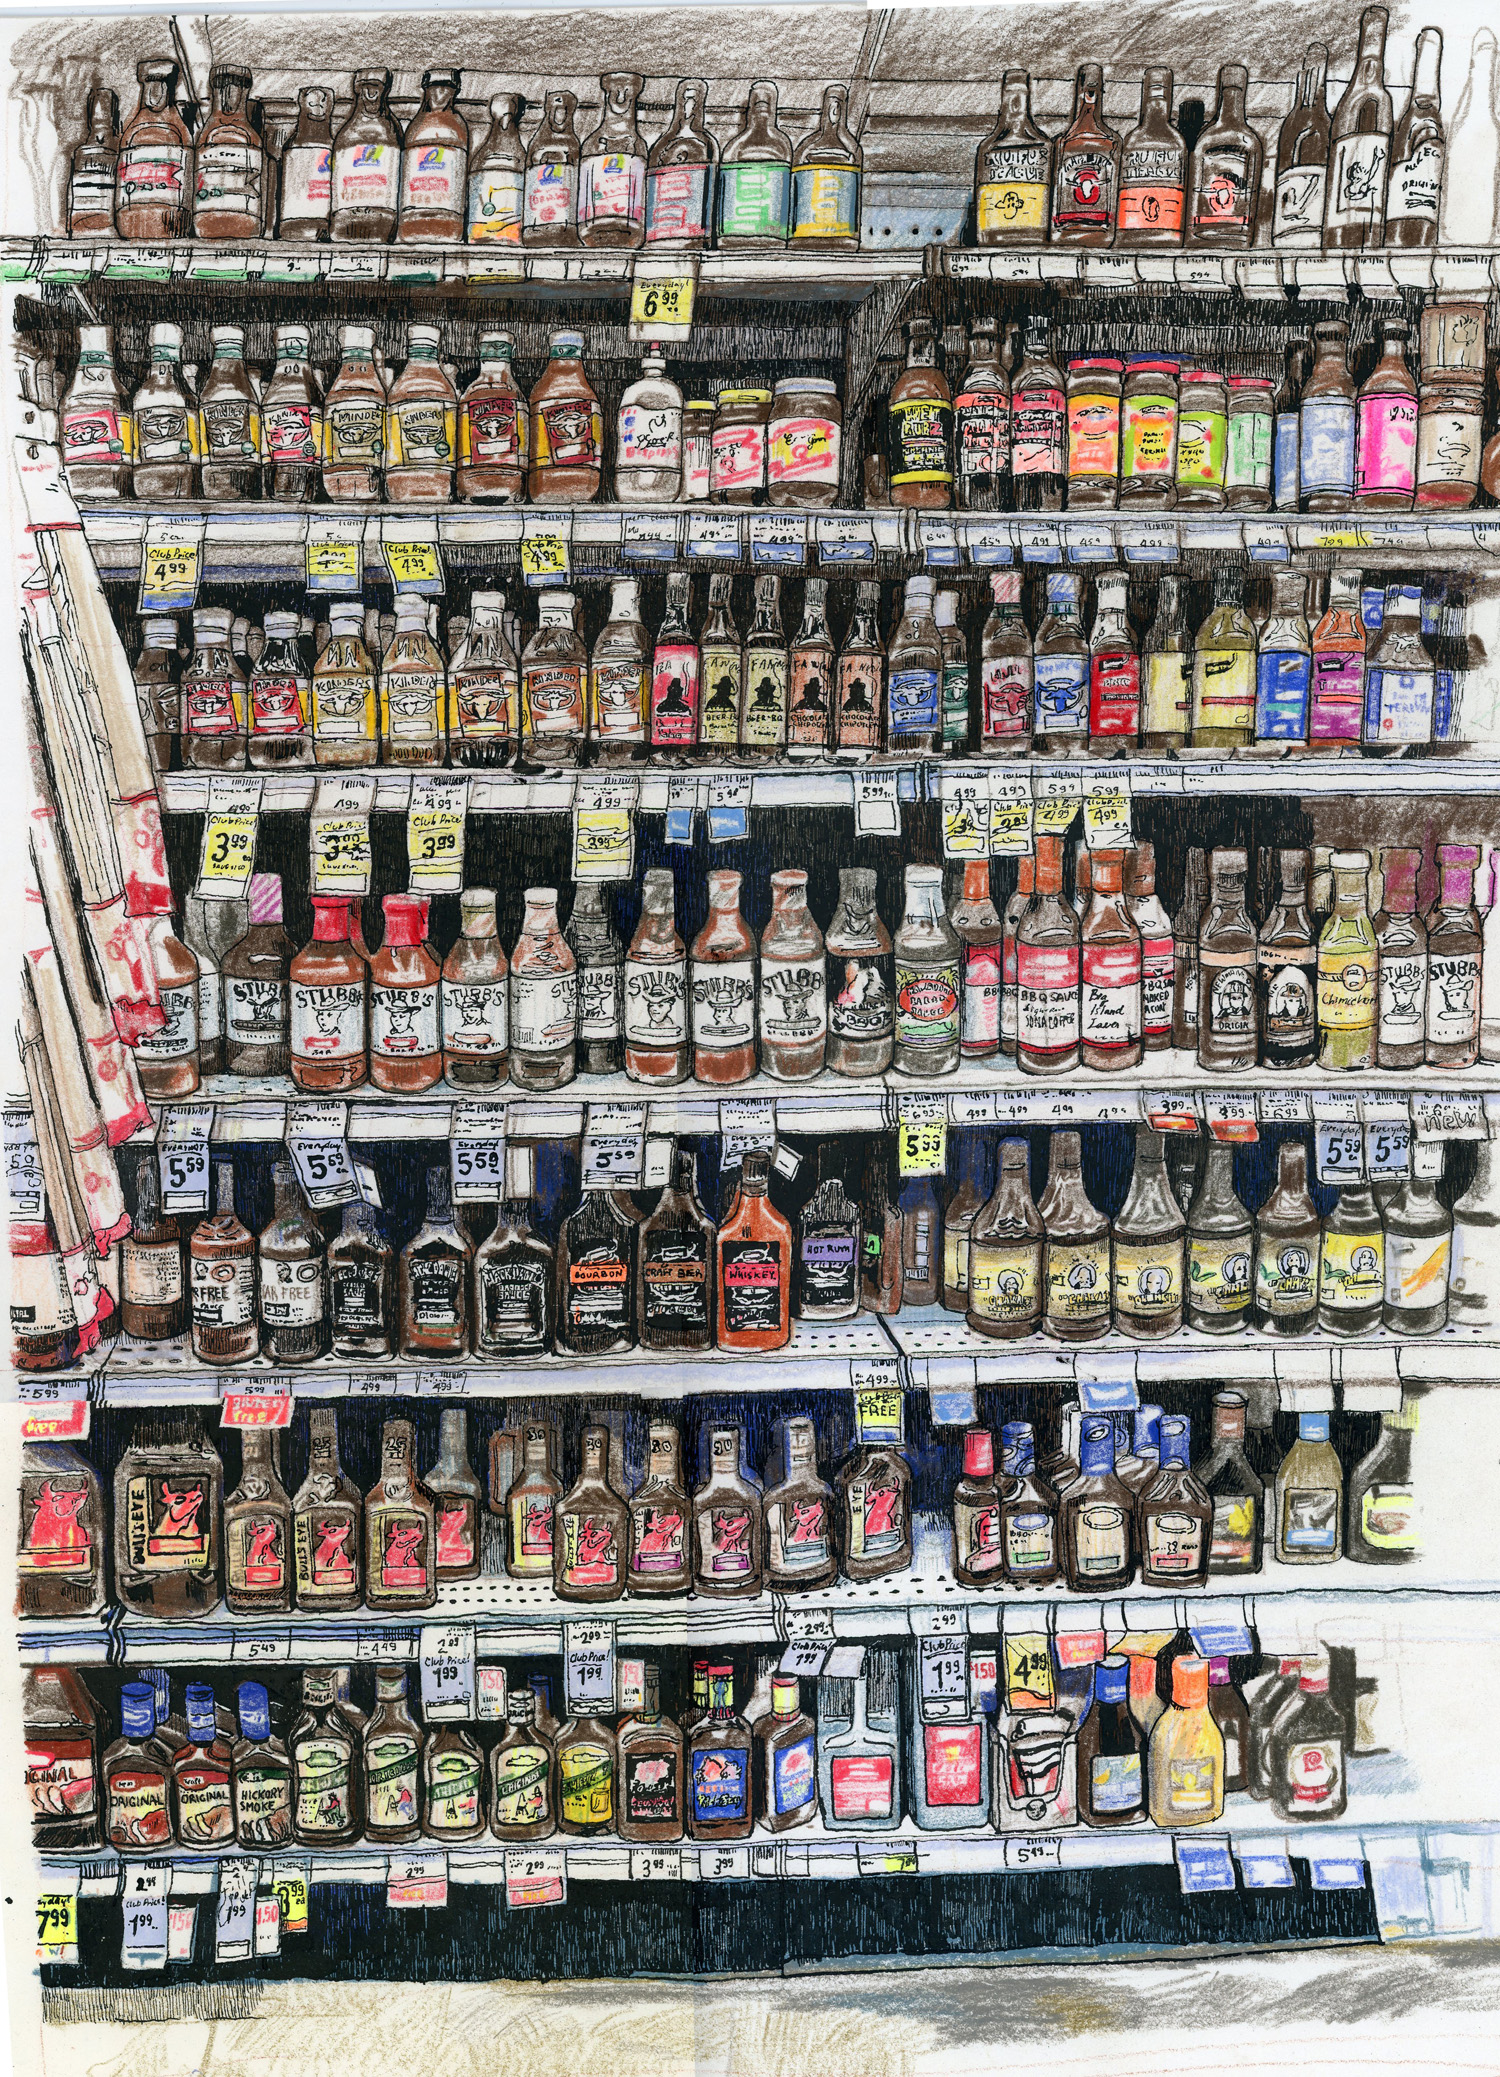 All the BBQ Sauces at Safeway